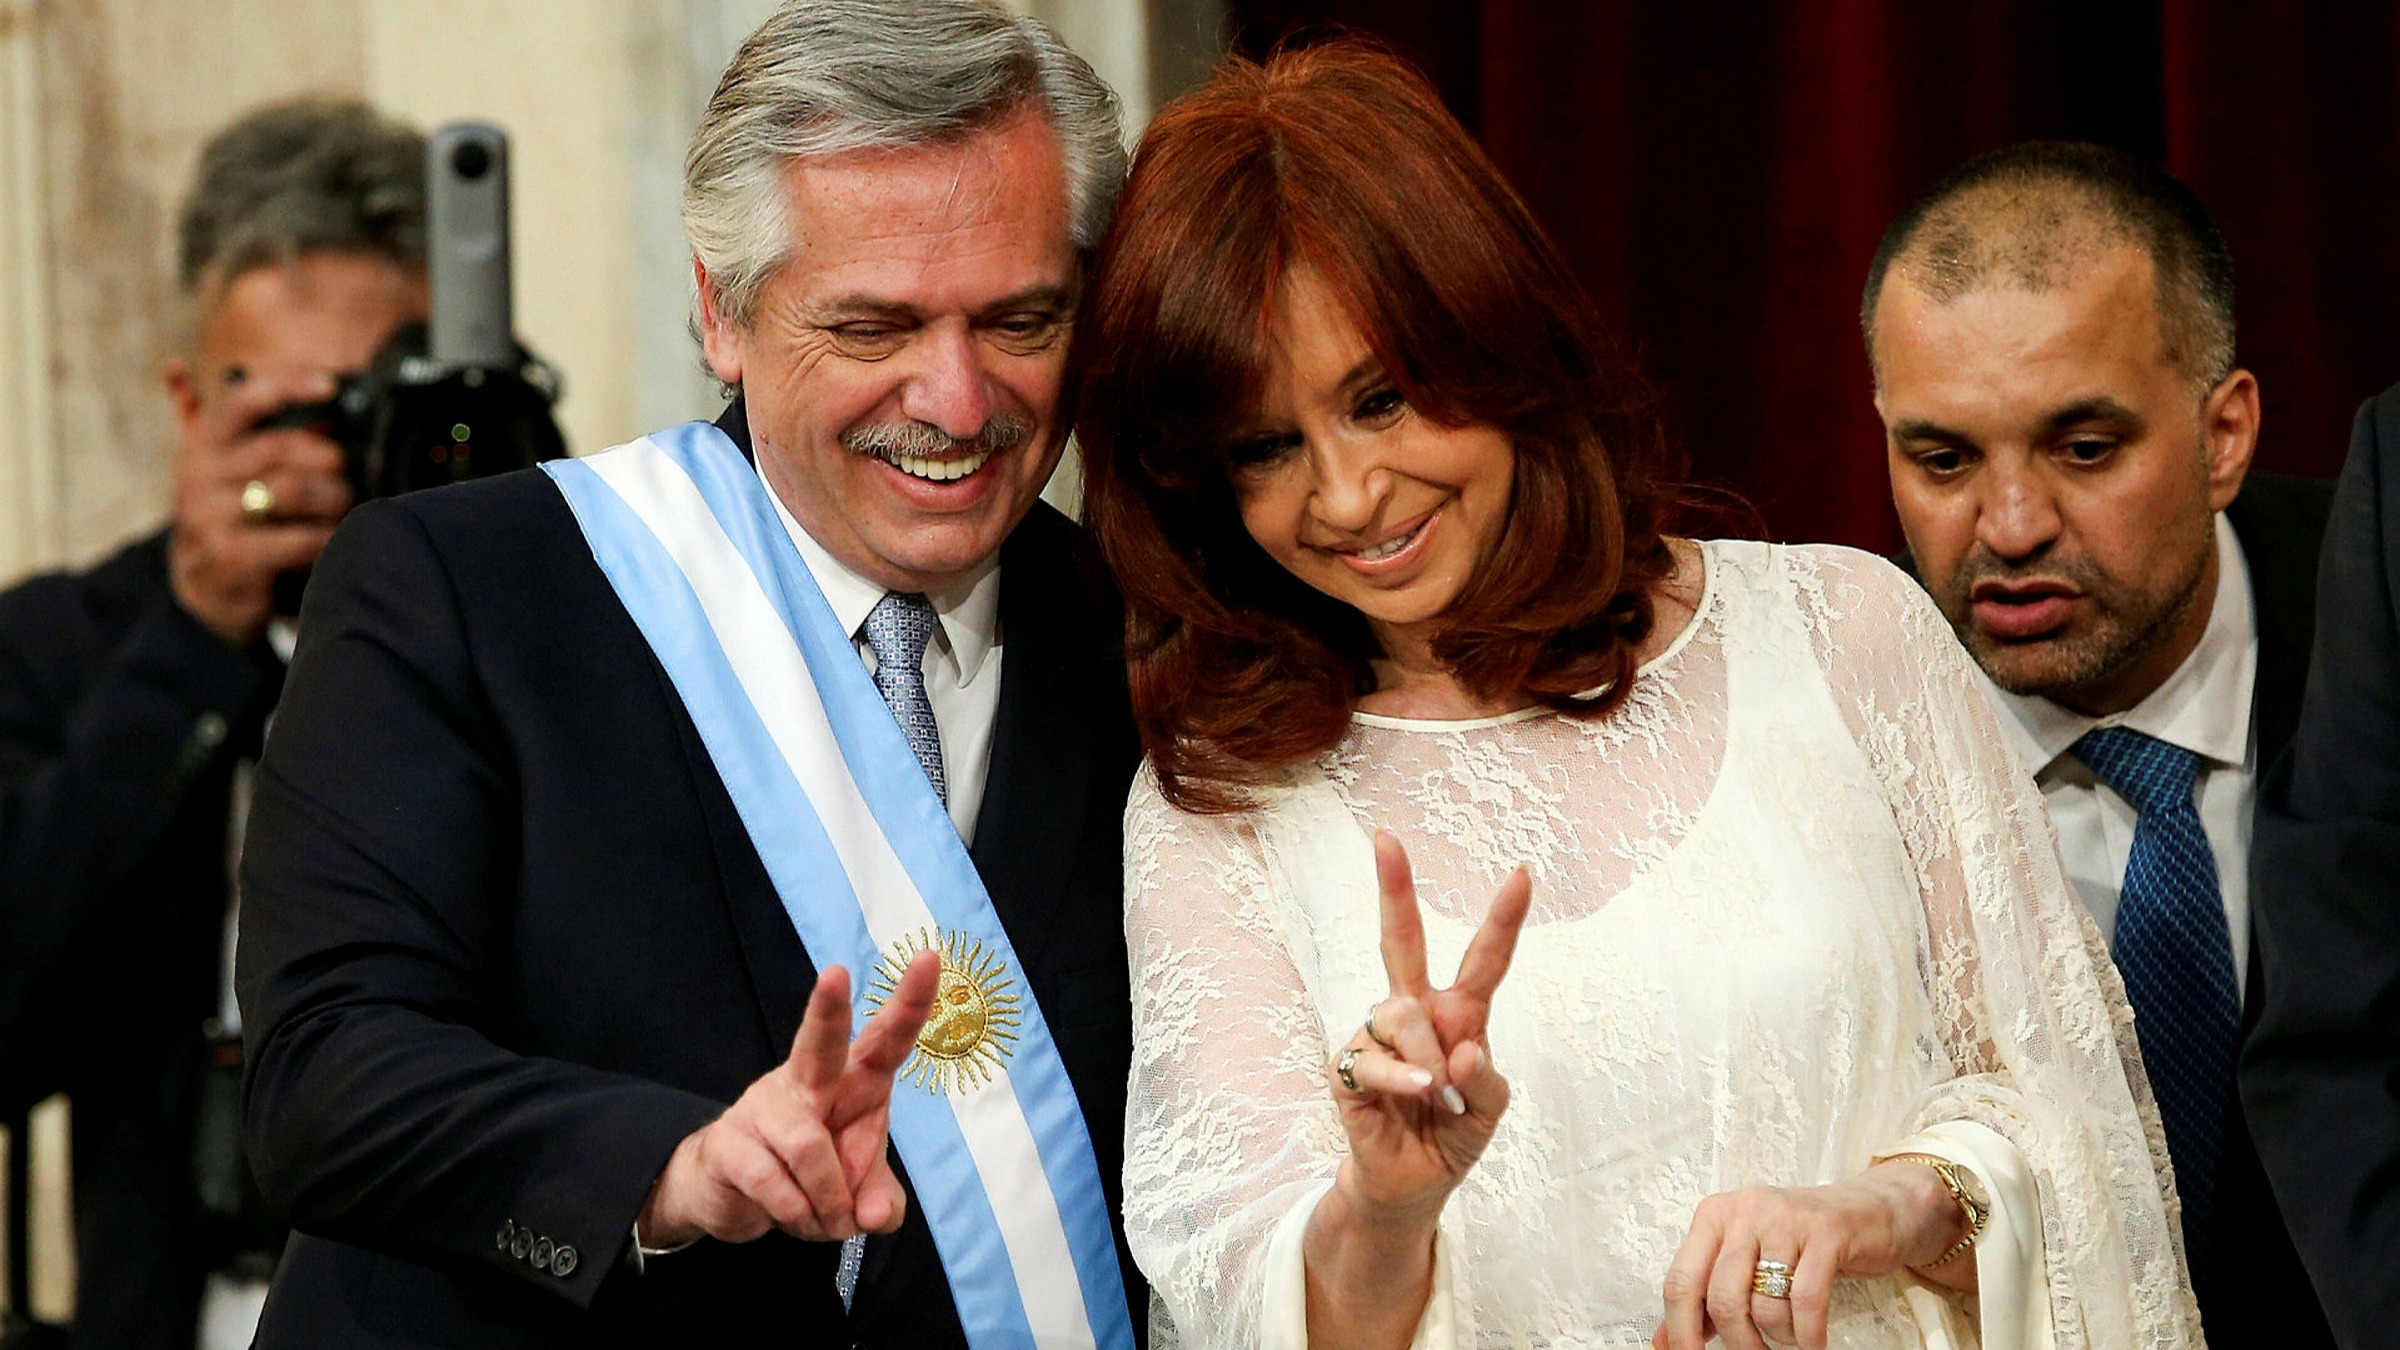 Argentina's political double act moves on to next challenge 2